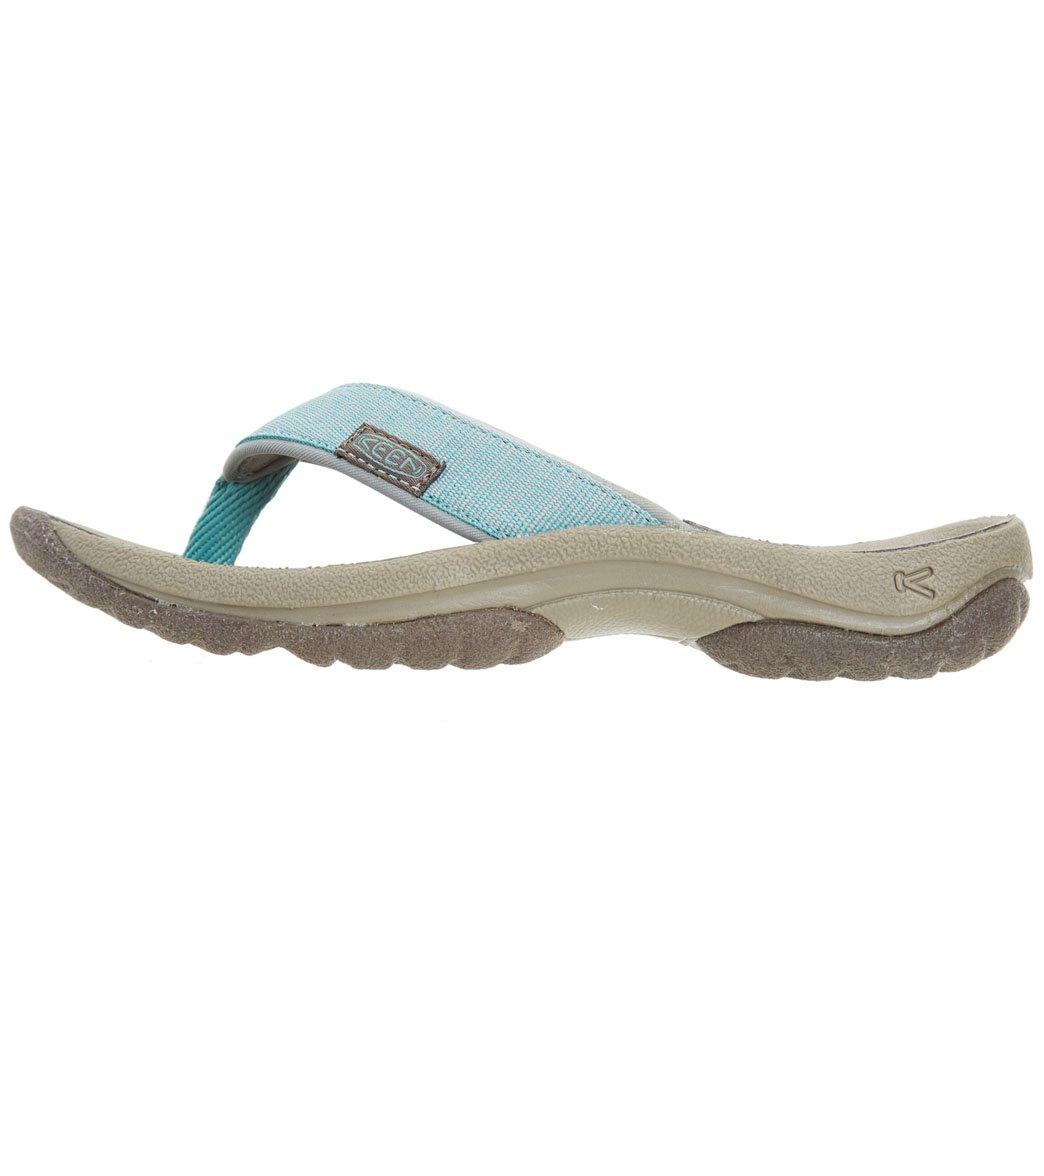 784859de96f0 Keen Women s Kona Flip Sandal at SwimOutlet.com - Free Shipping